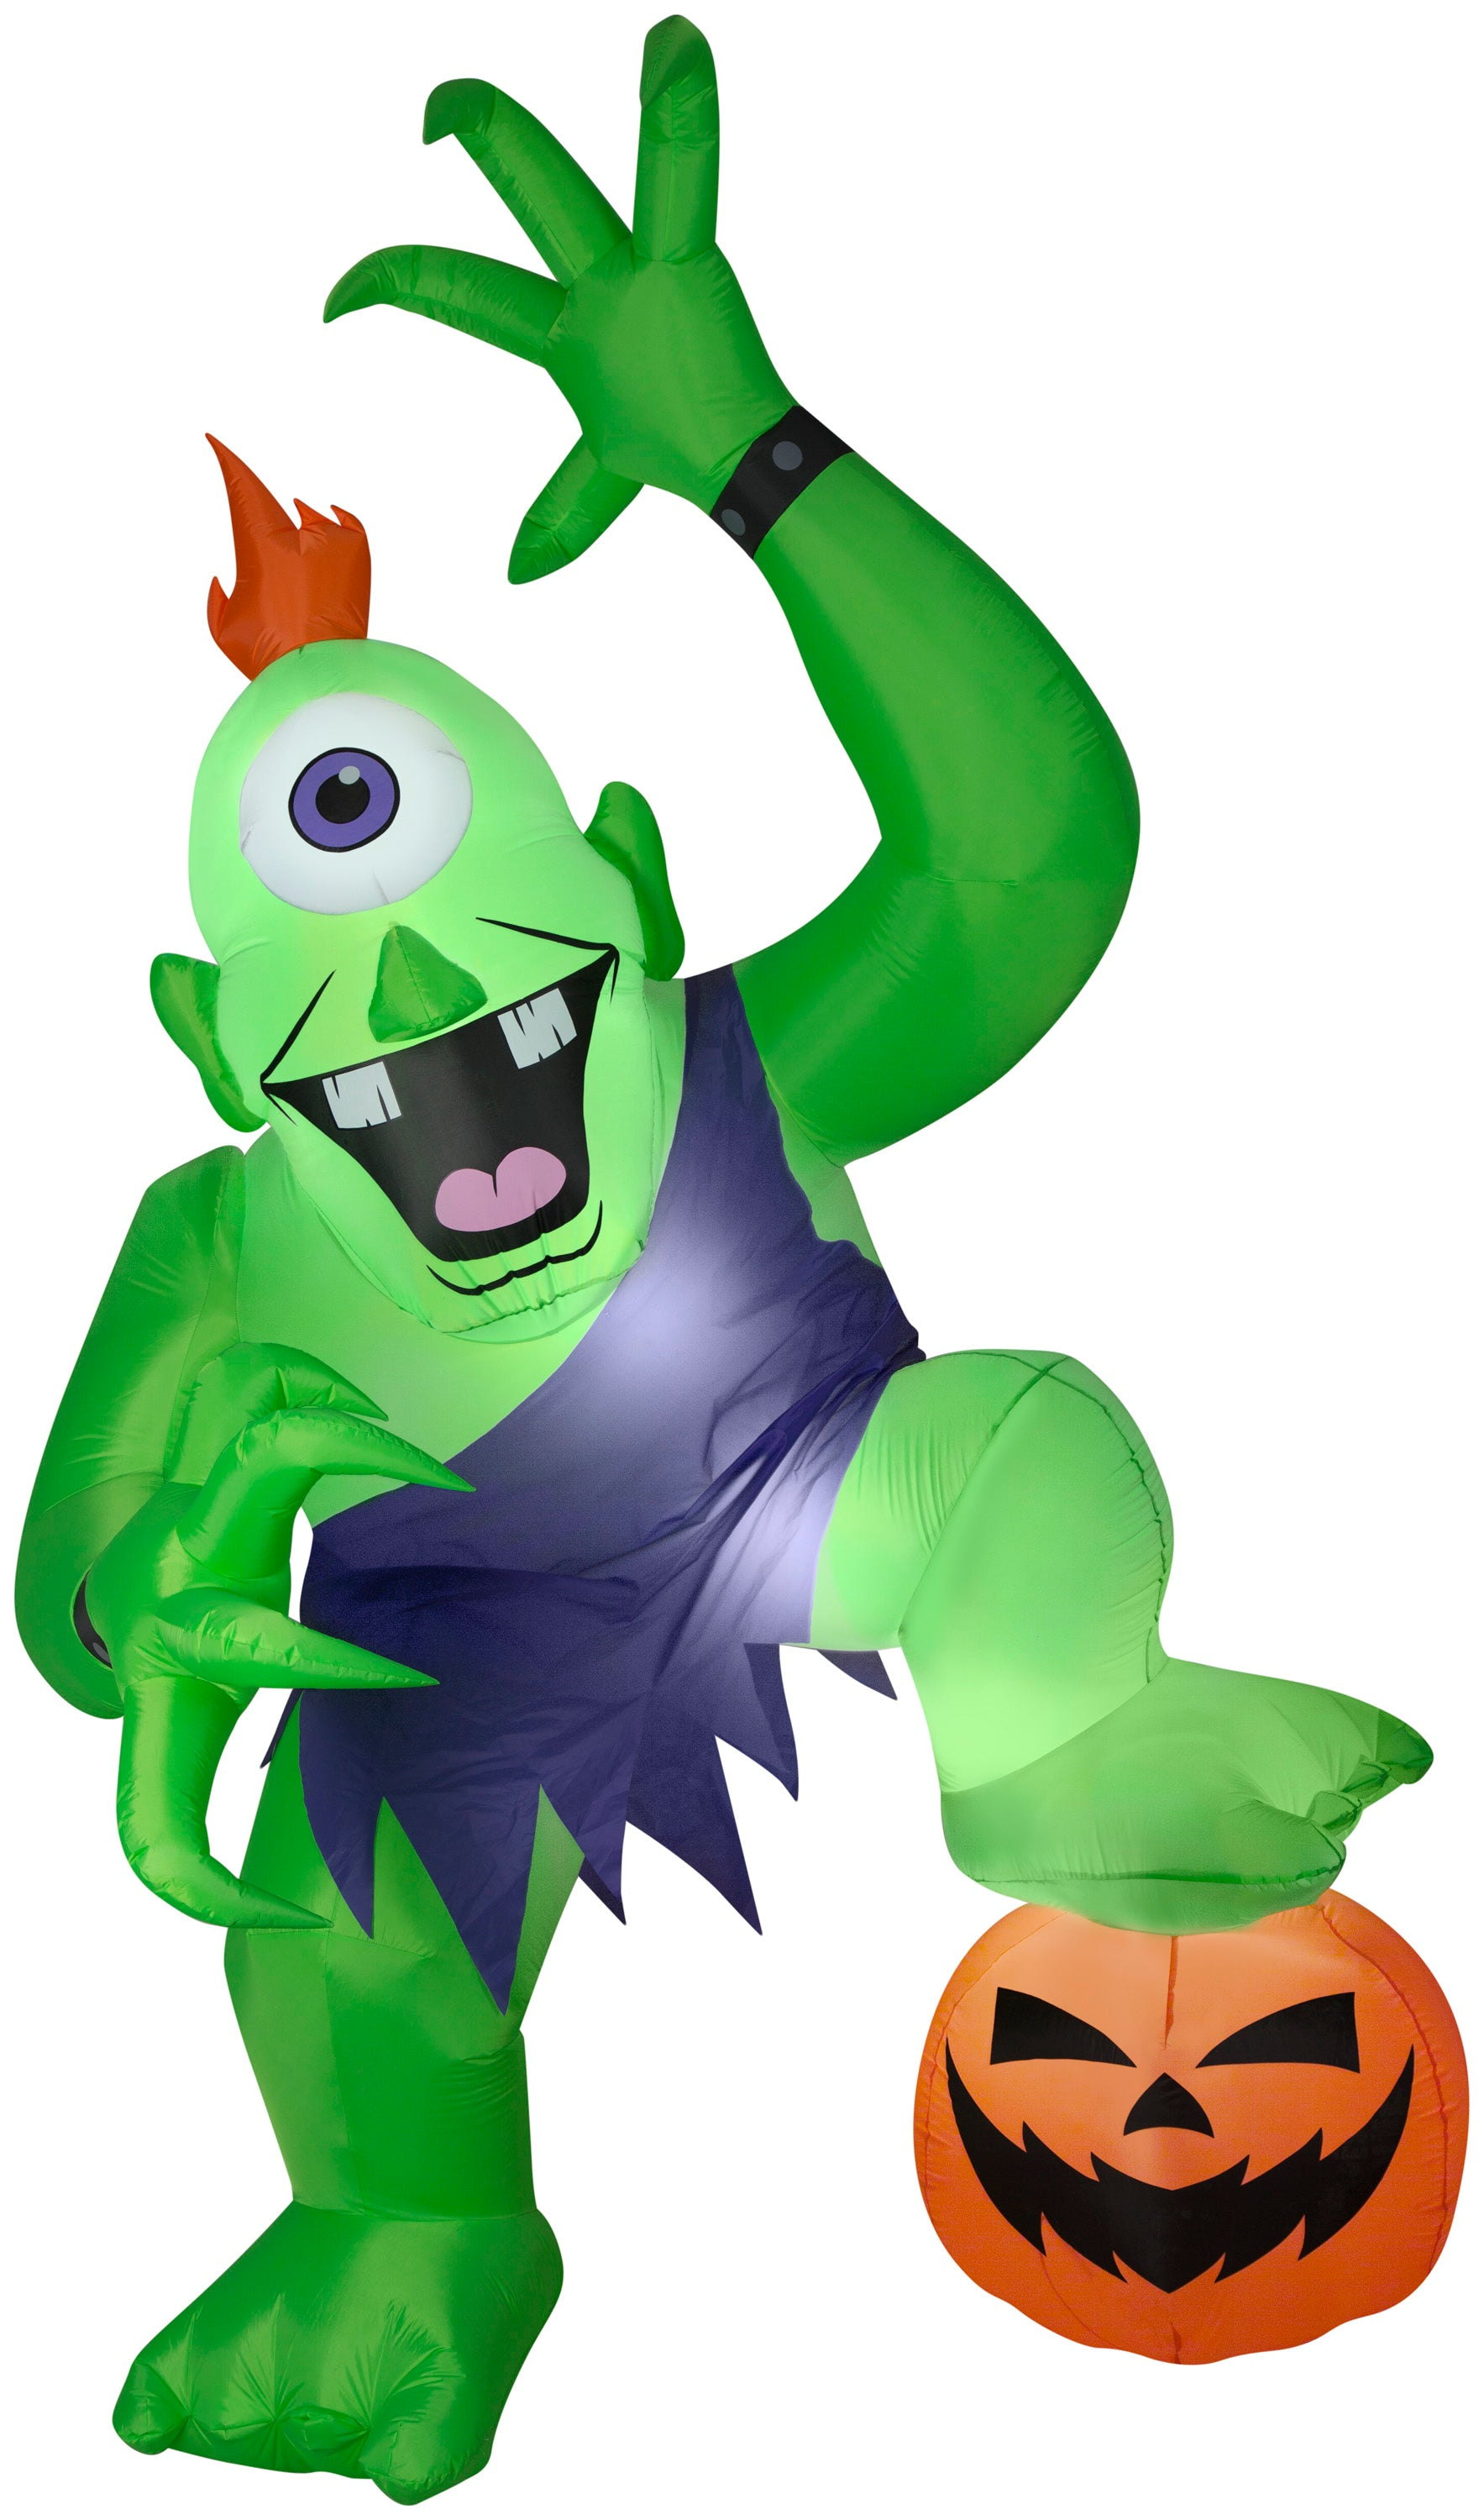 10' Airblown Ogre Giant Halloween Inflatable